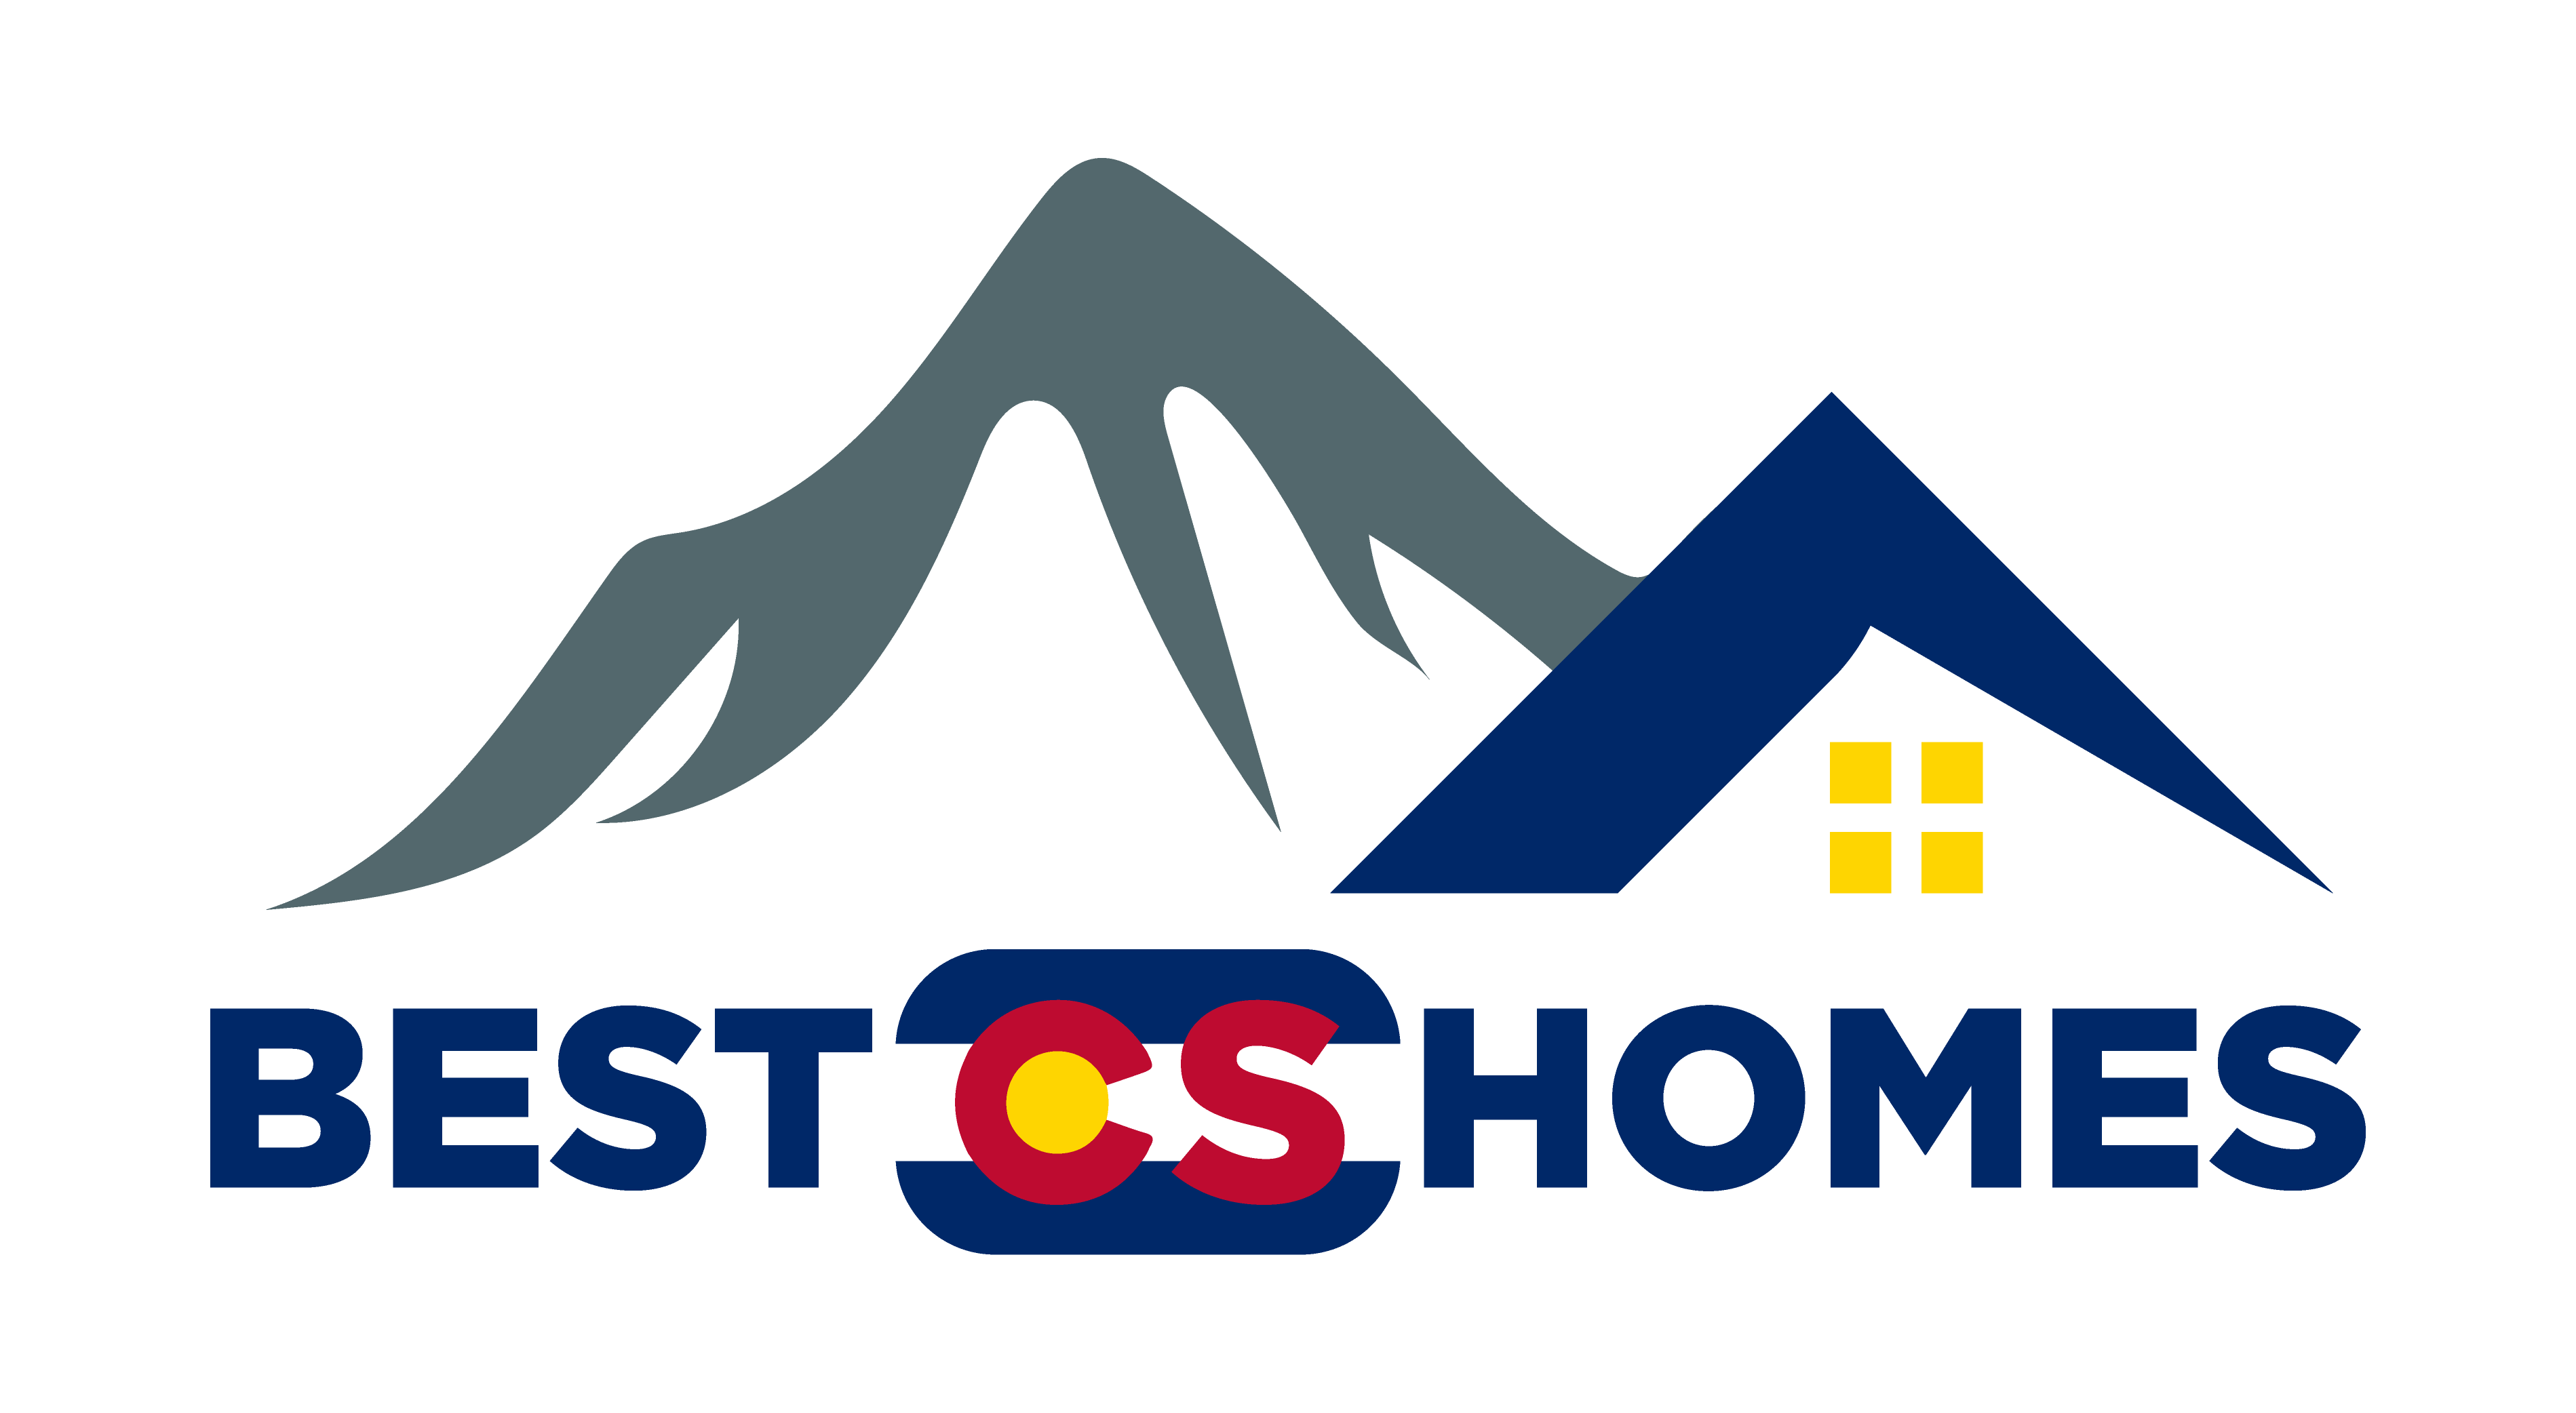 BestCSHomes at HomeSmart